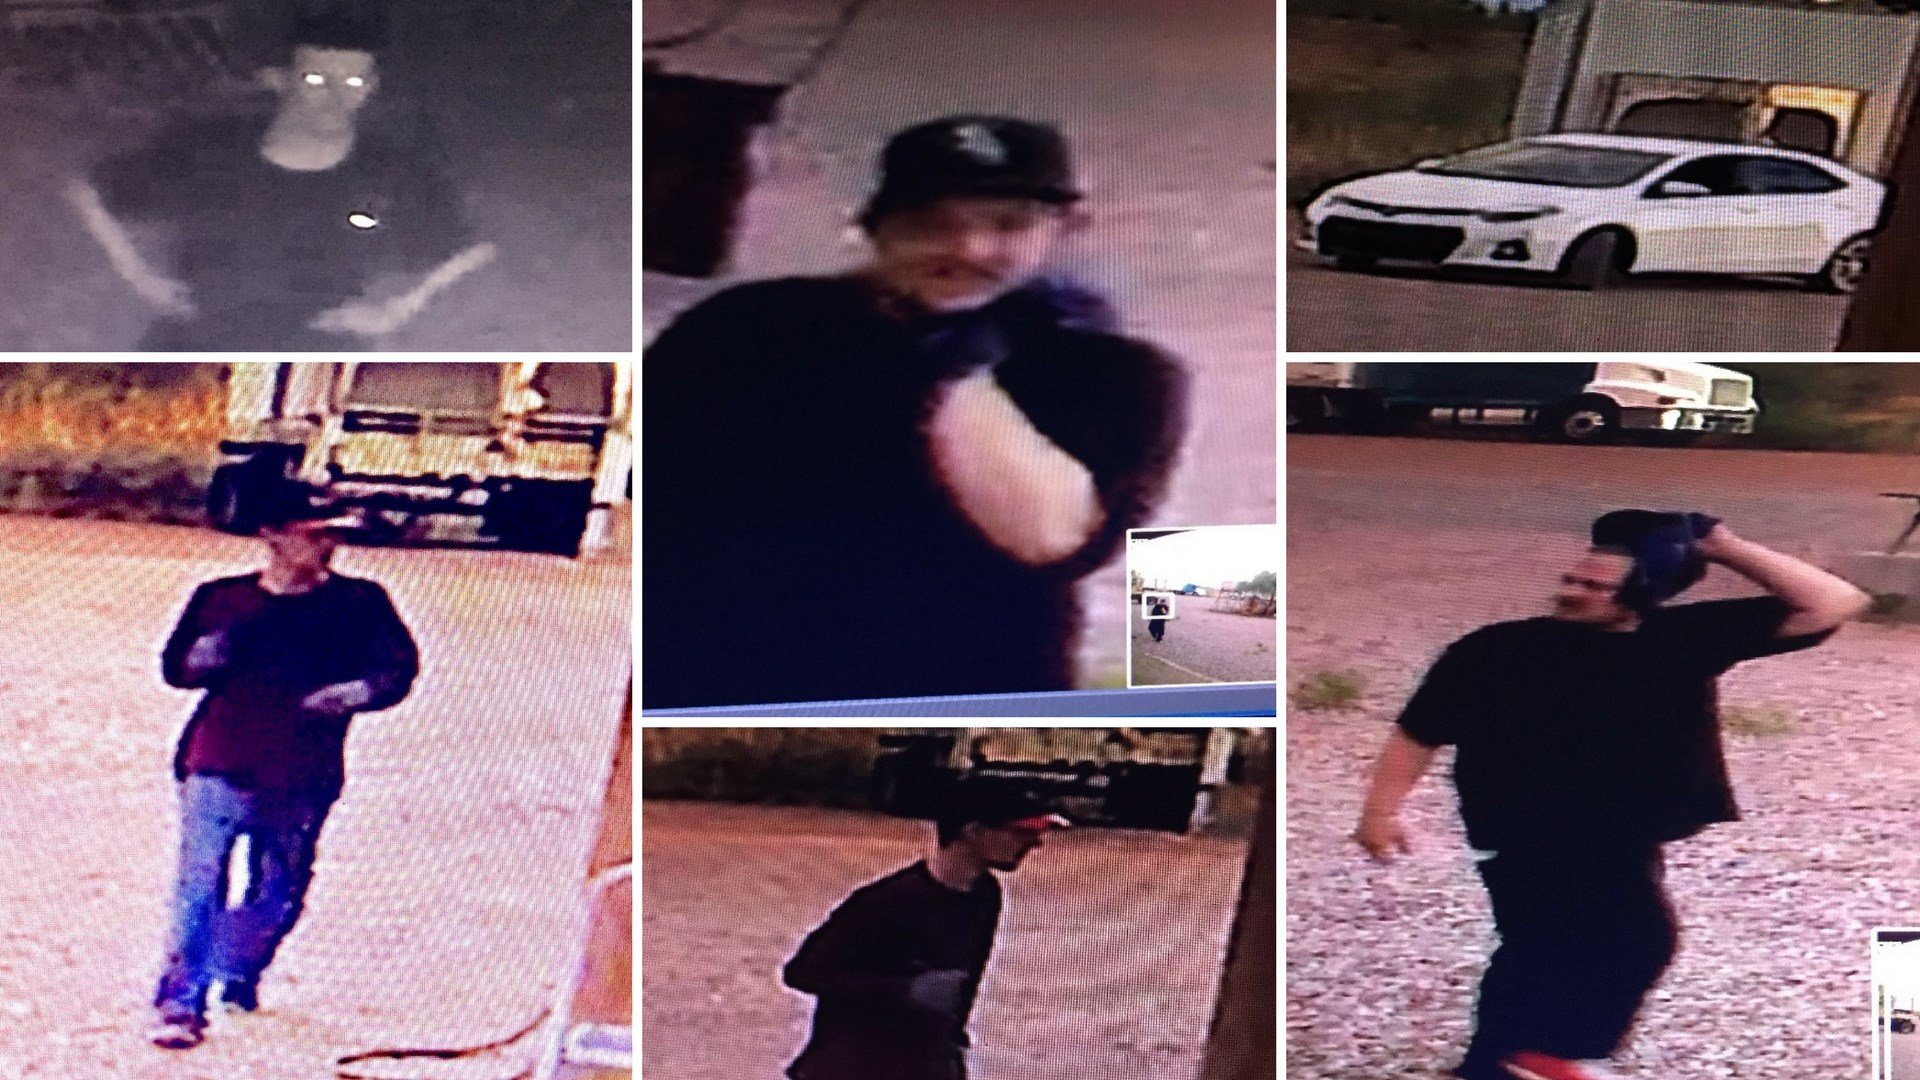 Surprise Police are seeking help identifying men who broke-in and stole equipment from a ranch. (Source: Surprise Police Department)